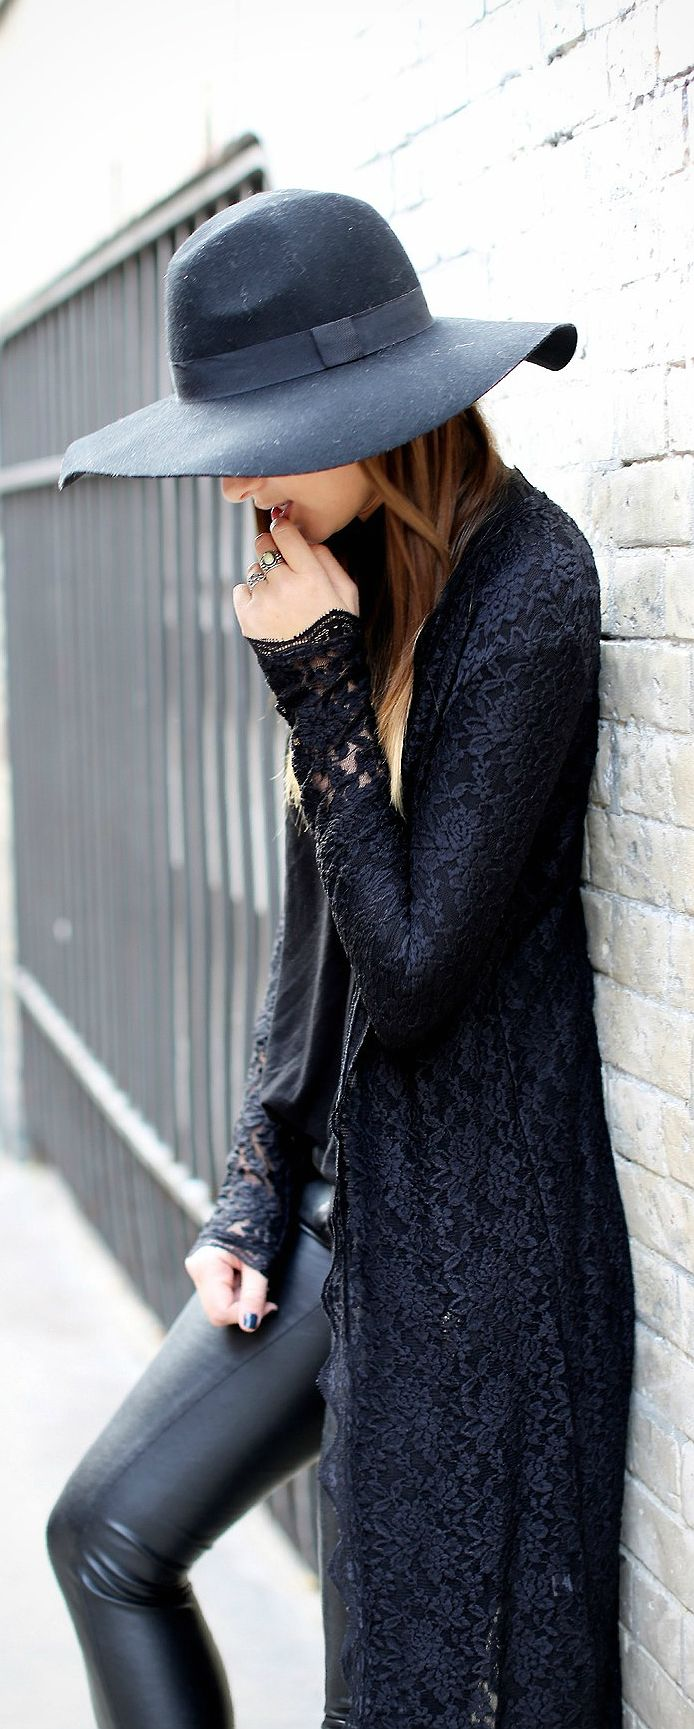 Street style fashion / karen cox. All Black :: leather and lace perfect combination